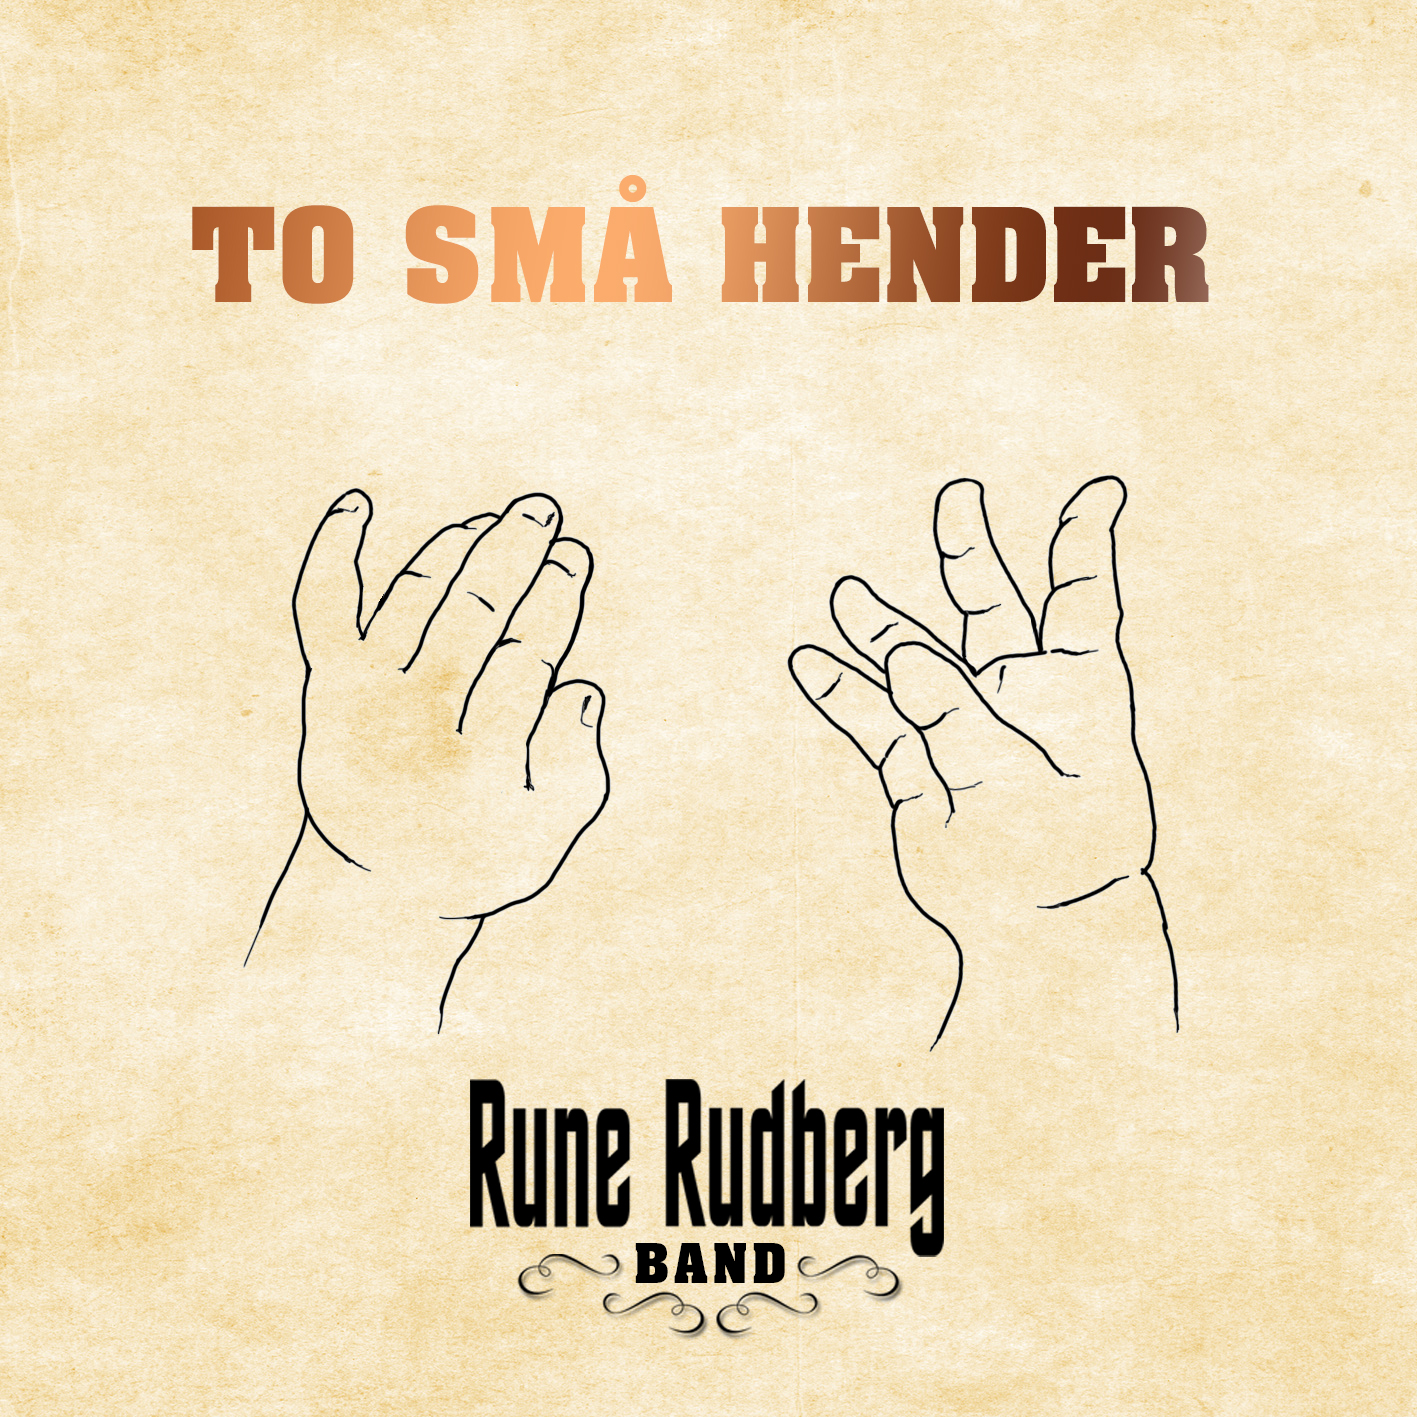 Rune Rudberg Band – To små hender